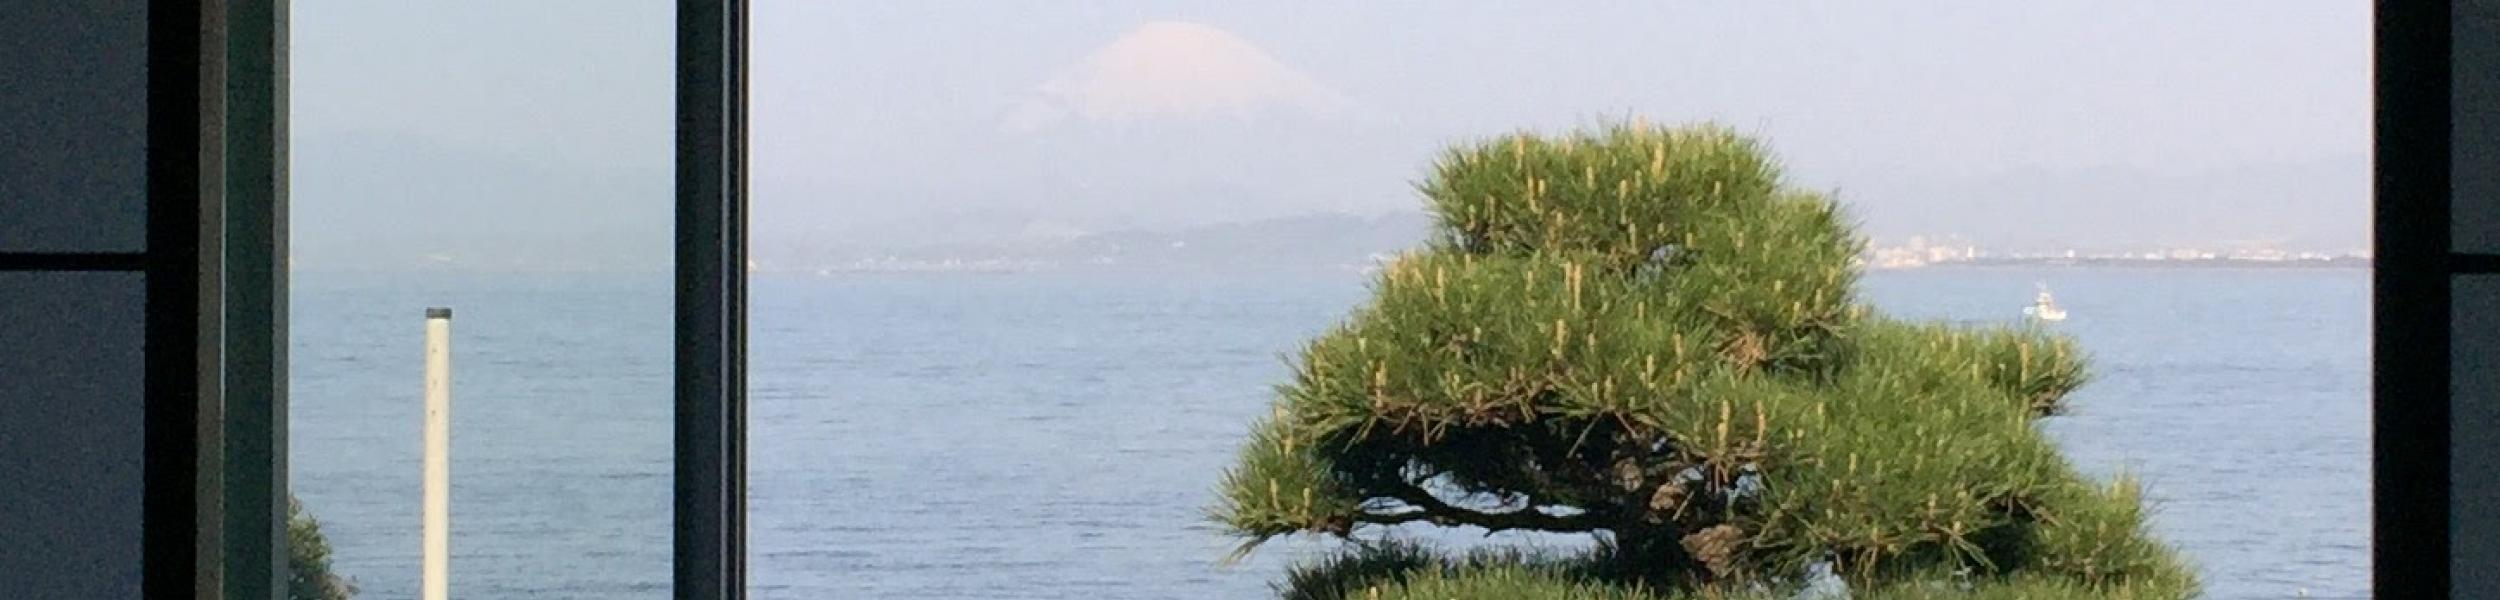 Mount Fuji and a shaped fir tree from within a hotel room in Enoshima Japan, April 2017